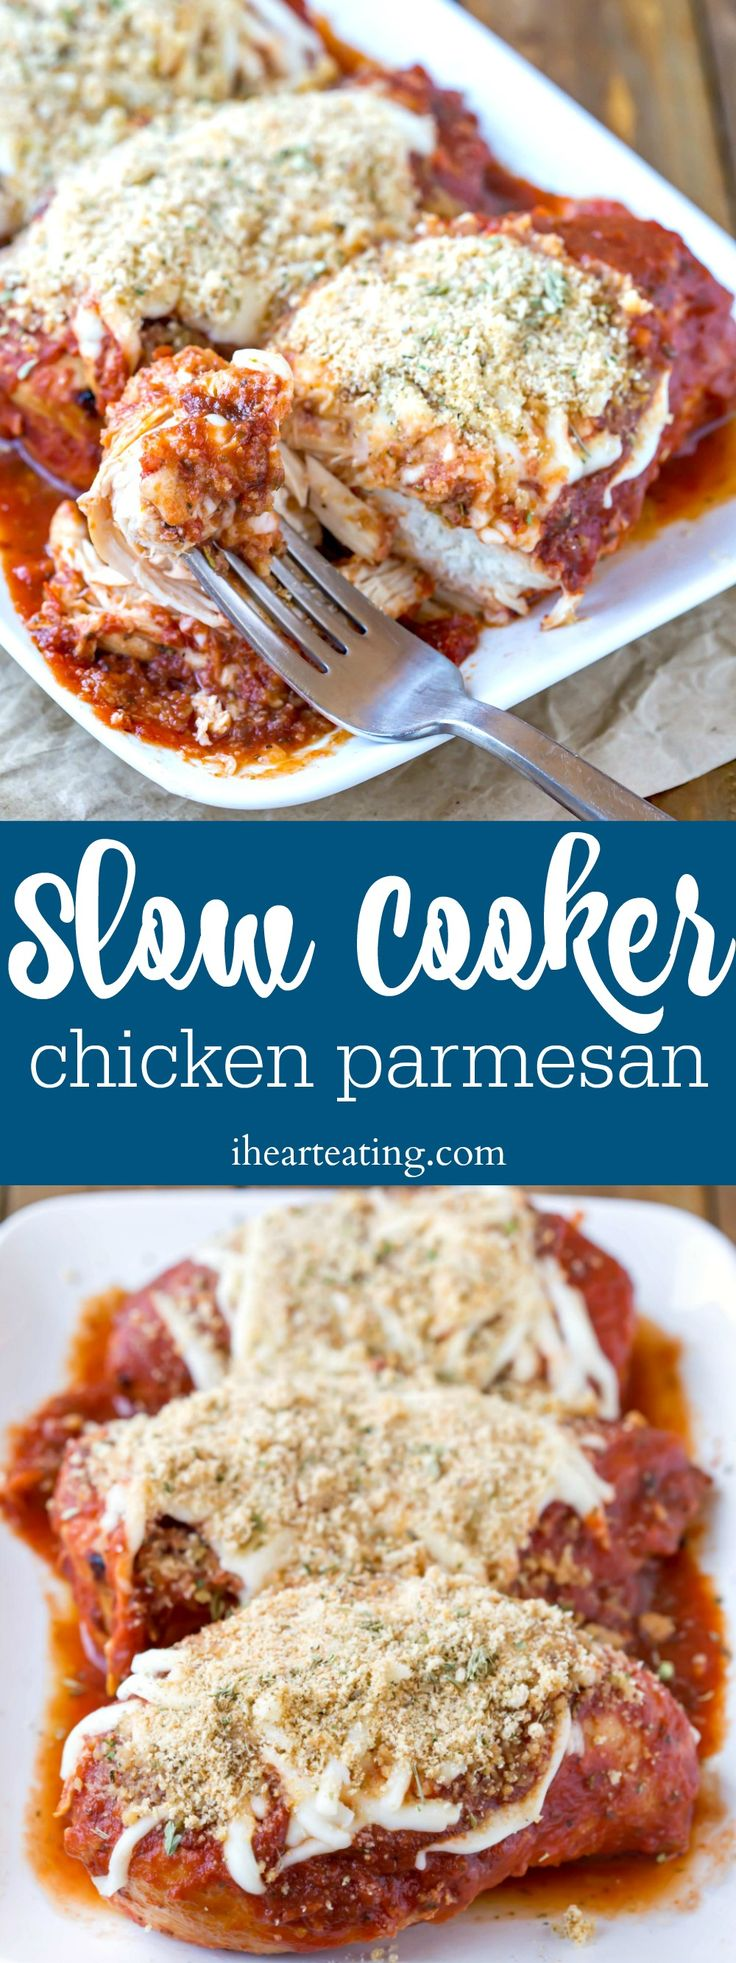 Slow Cooker Chicken Parmesan recipe makes tender chicken breasts topped with marinara, melty cheese, and an easy crunch topping! Great crock pot dinner!